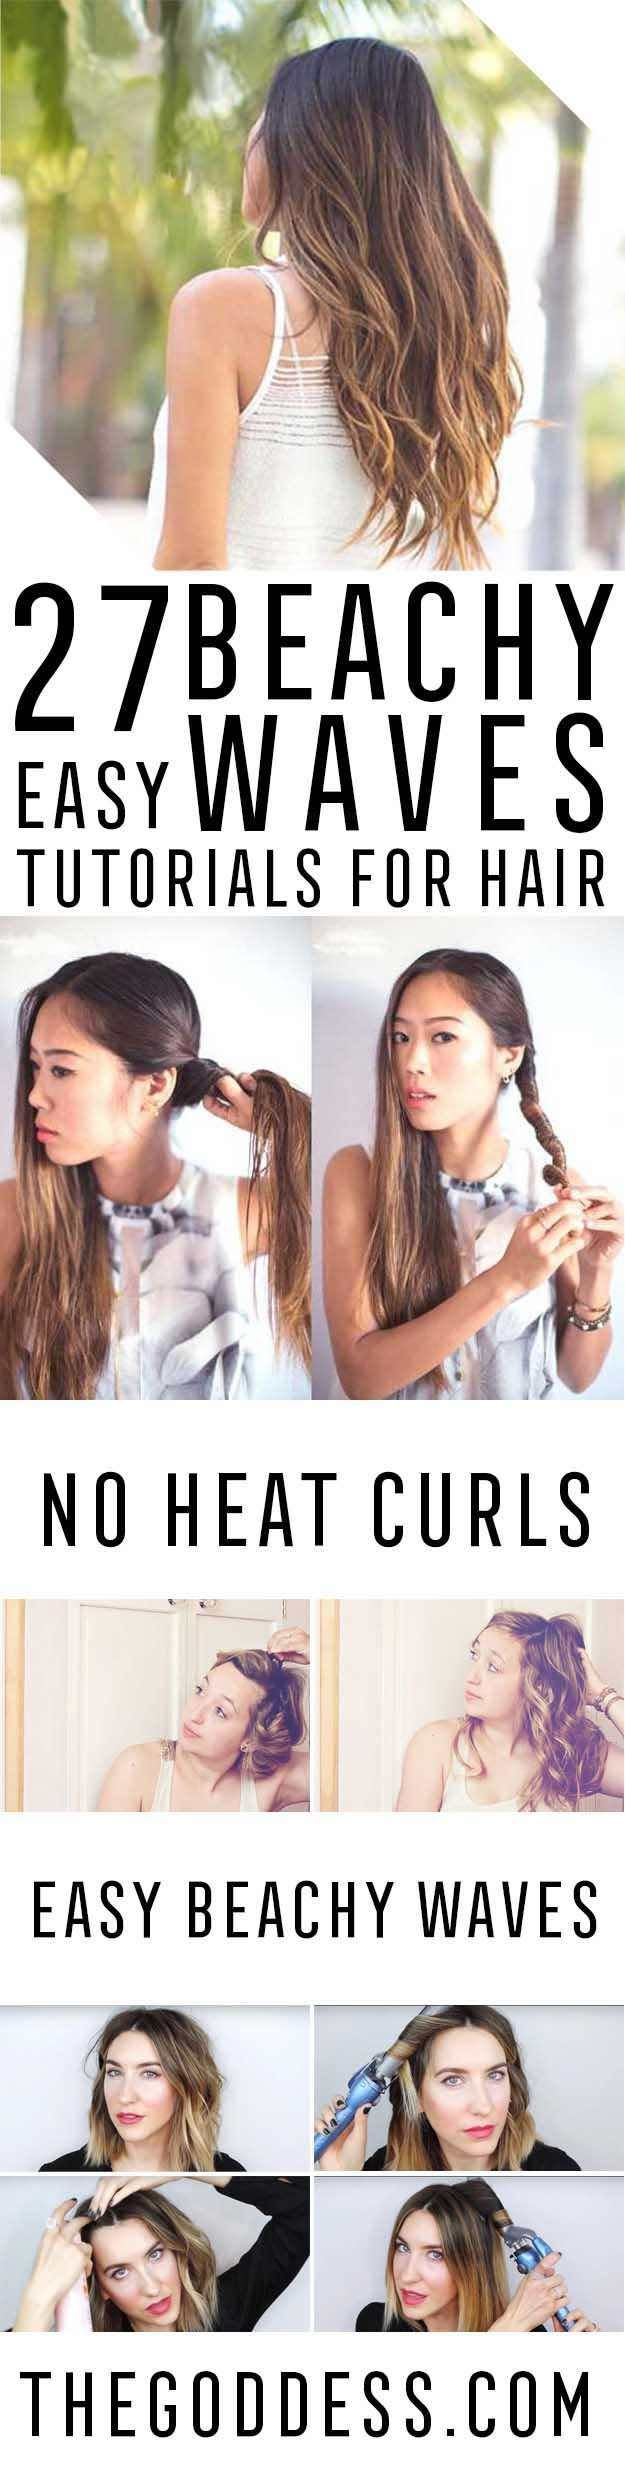 Easy beachy waves tutorials for hair diy and easy step by step